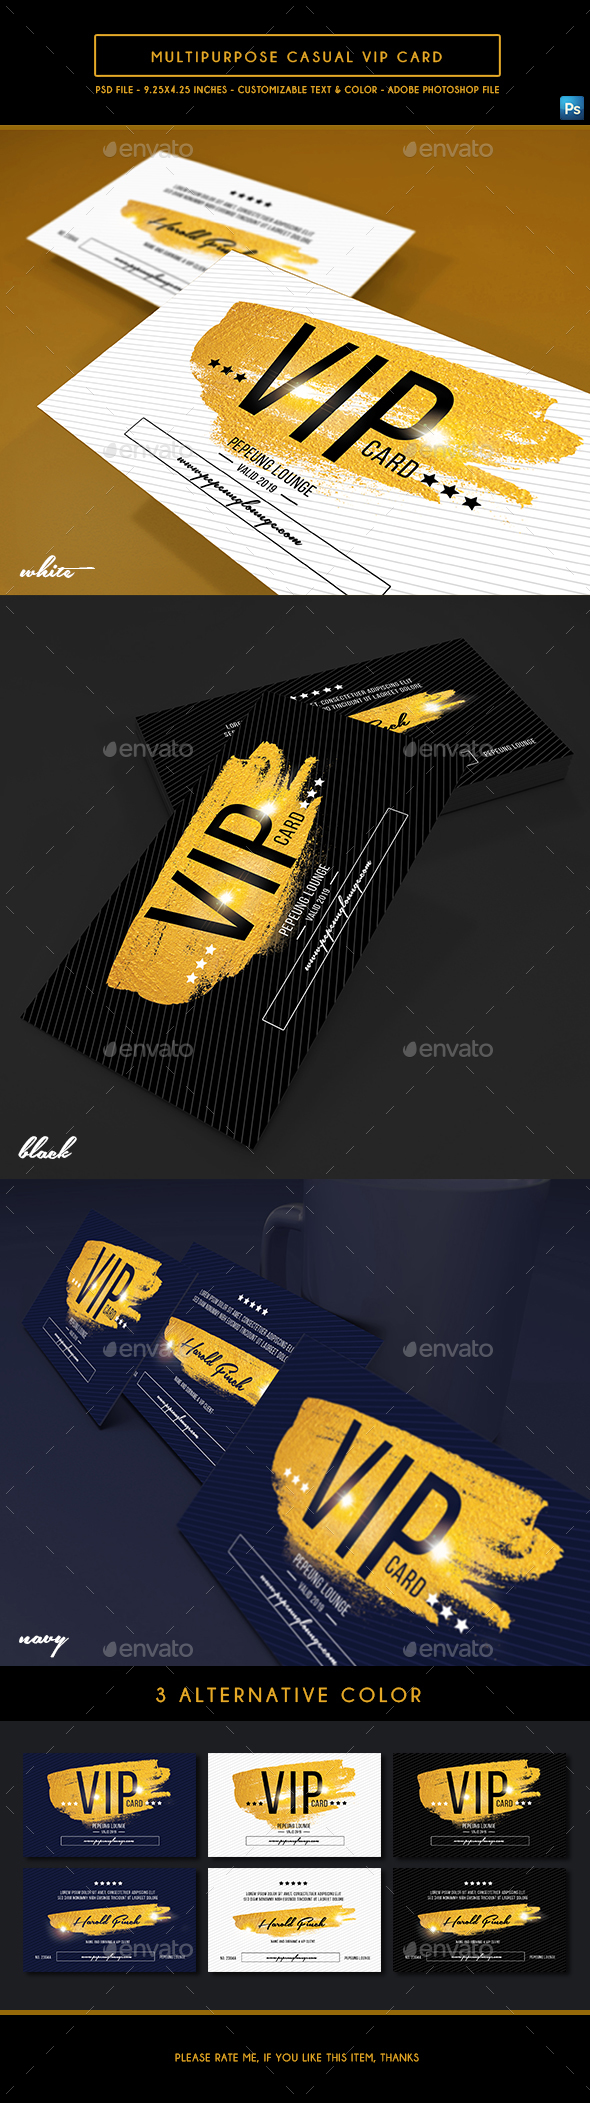 Multipurpose Casual Vip Card - Business Cards Print Templates